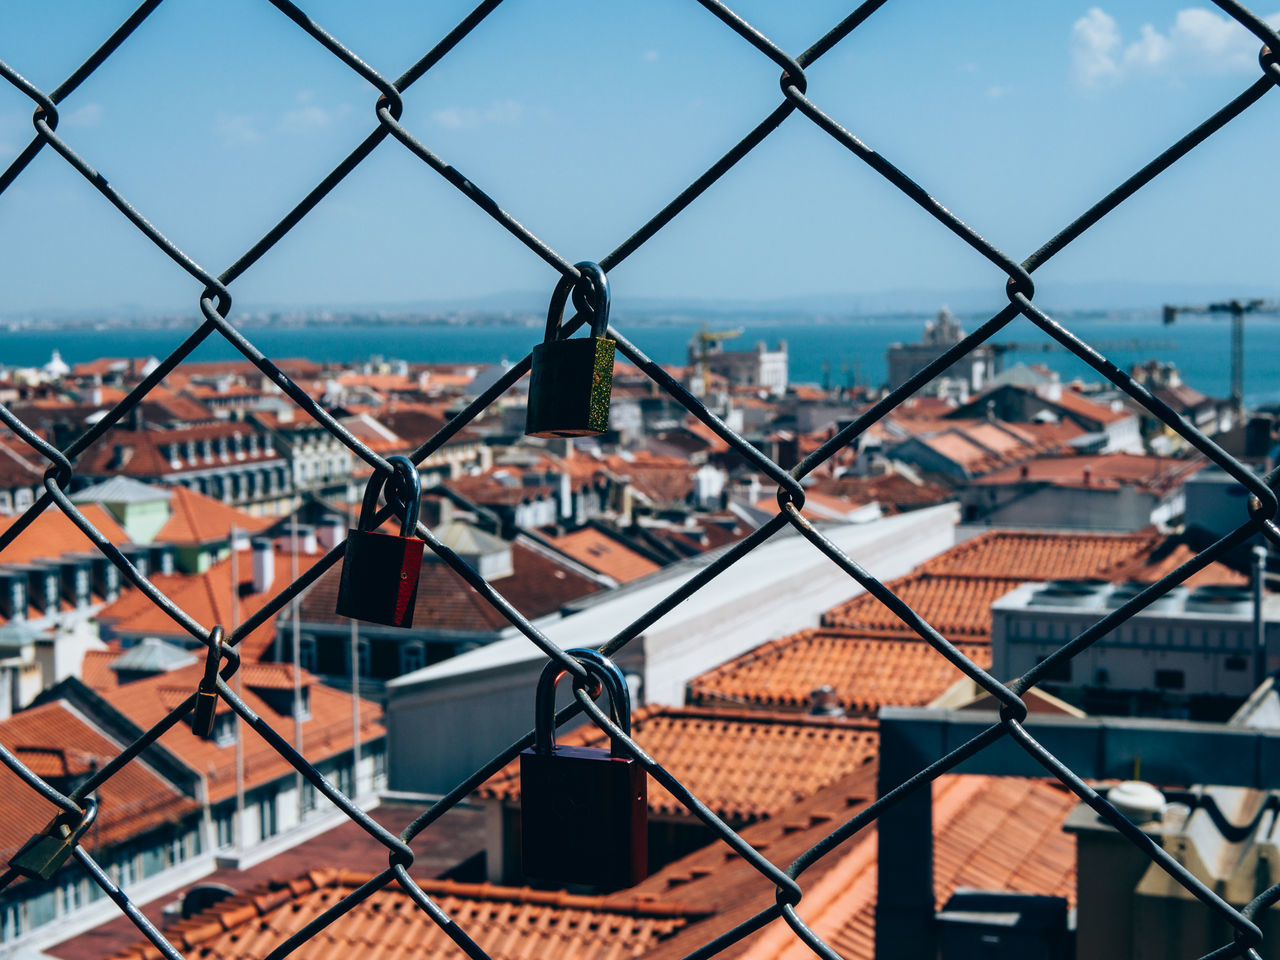 Architecture Building Exterior Built Structure Chainlink Fence City Cityscape Close-up Day Focus On Foreground Forever Forever Love Lock Lock On Bridge Locks Locks Of Love Locks Of Love Bridge Locksoflove Love Love Lock Love Lock Bridge Love Locks Love Locks Bridge No People Outdoors Sky